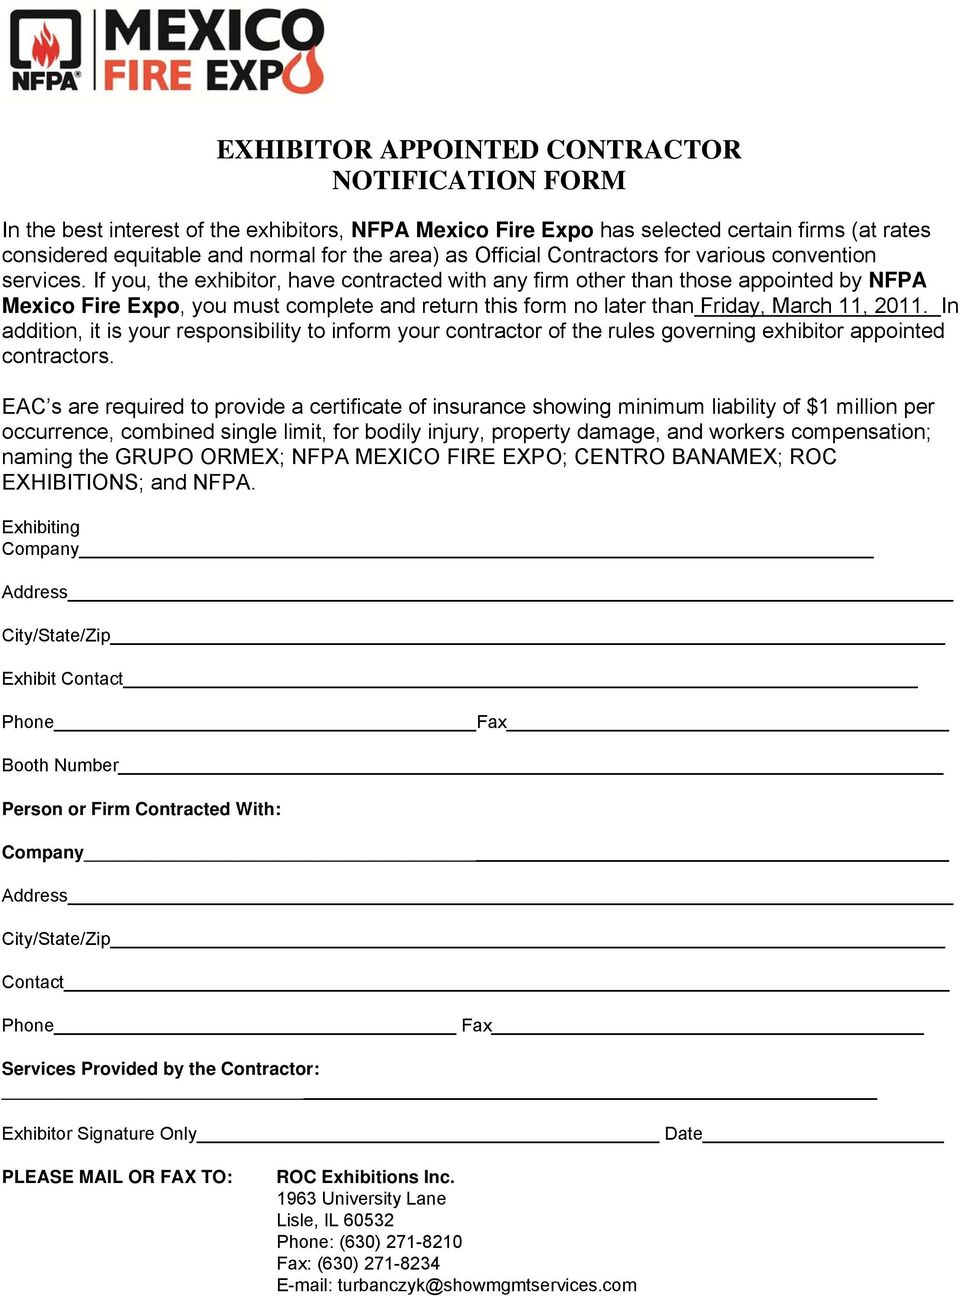 If you, the exhibitor, have contracted with any firm other than those appointed by NFPA Mexico Fire Expo, you must complete and return this form no later than Friday, March 11, 2011.